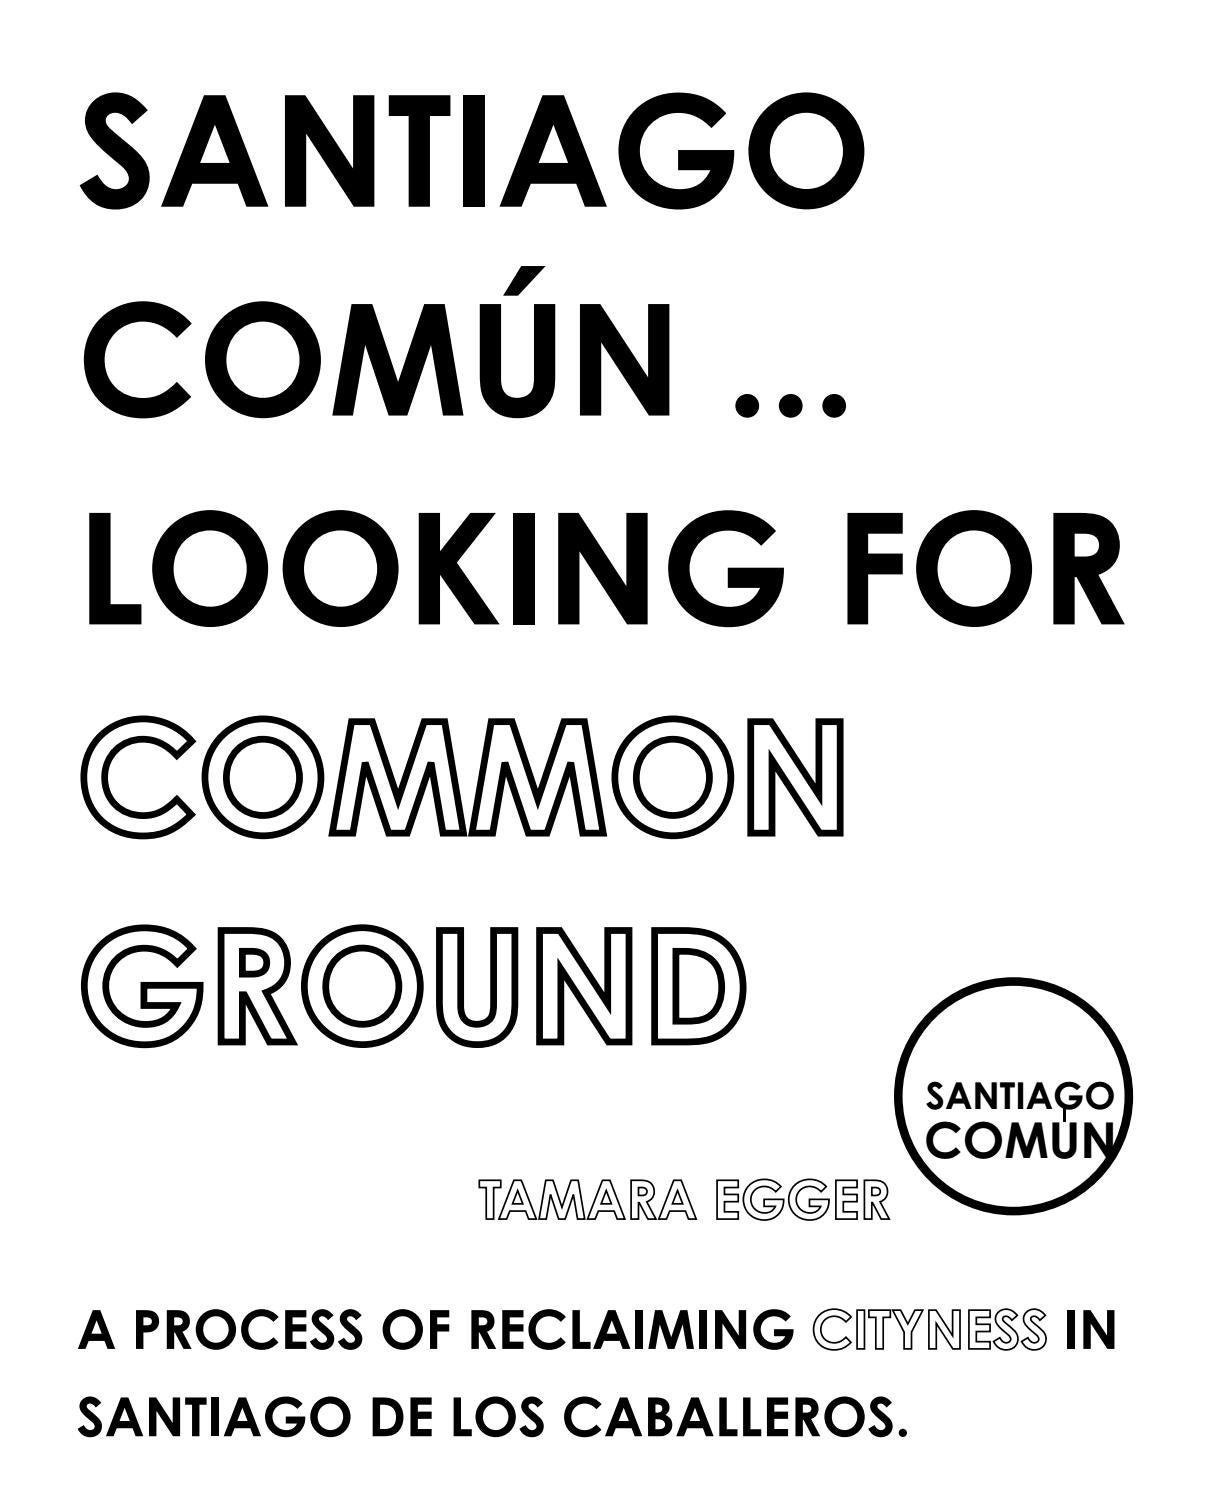 cb4f87fd3e90 Santiago Común ... Looking for Common Ground. by Tamara Egger - issuu